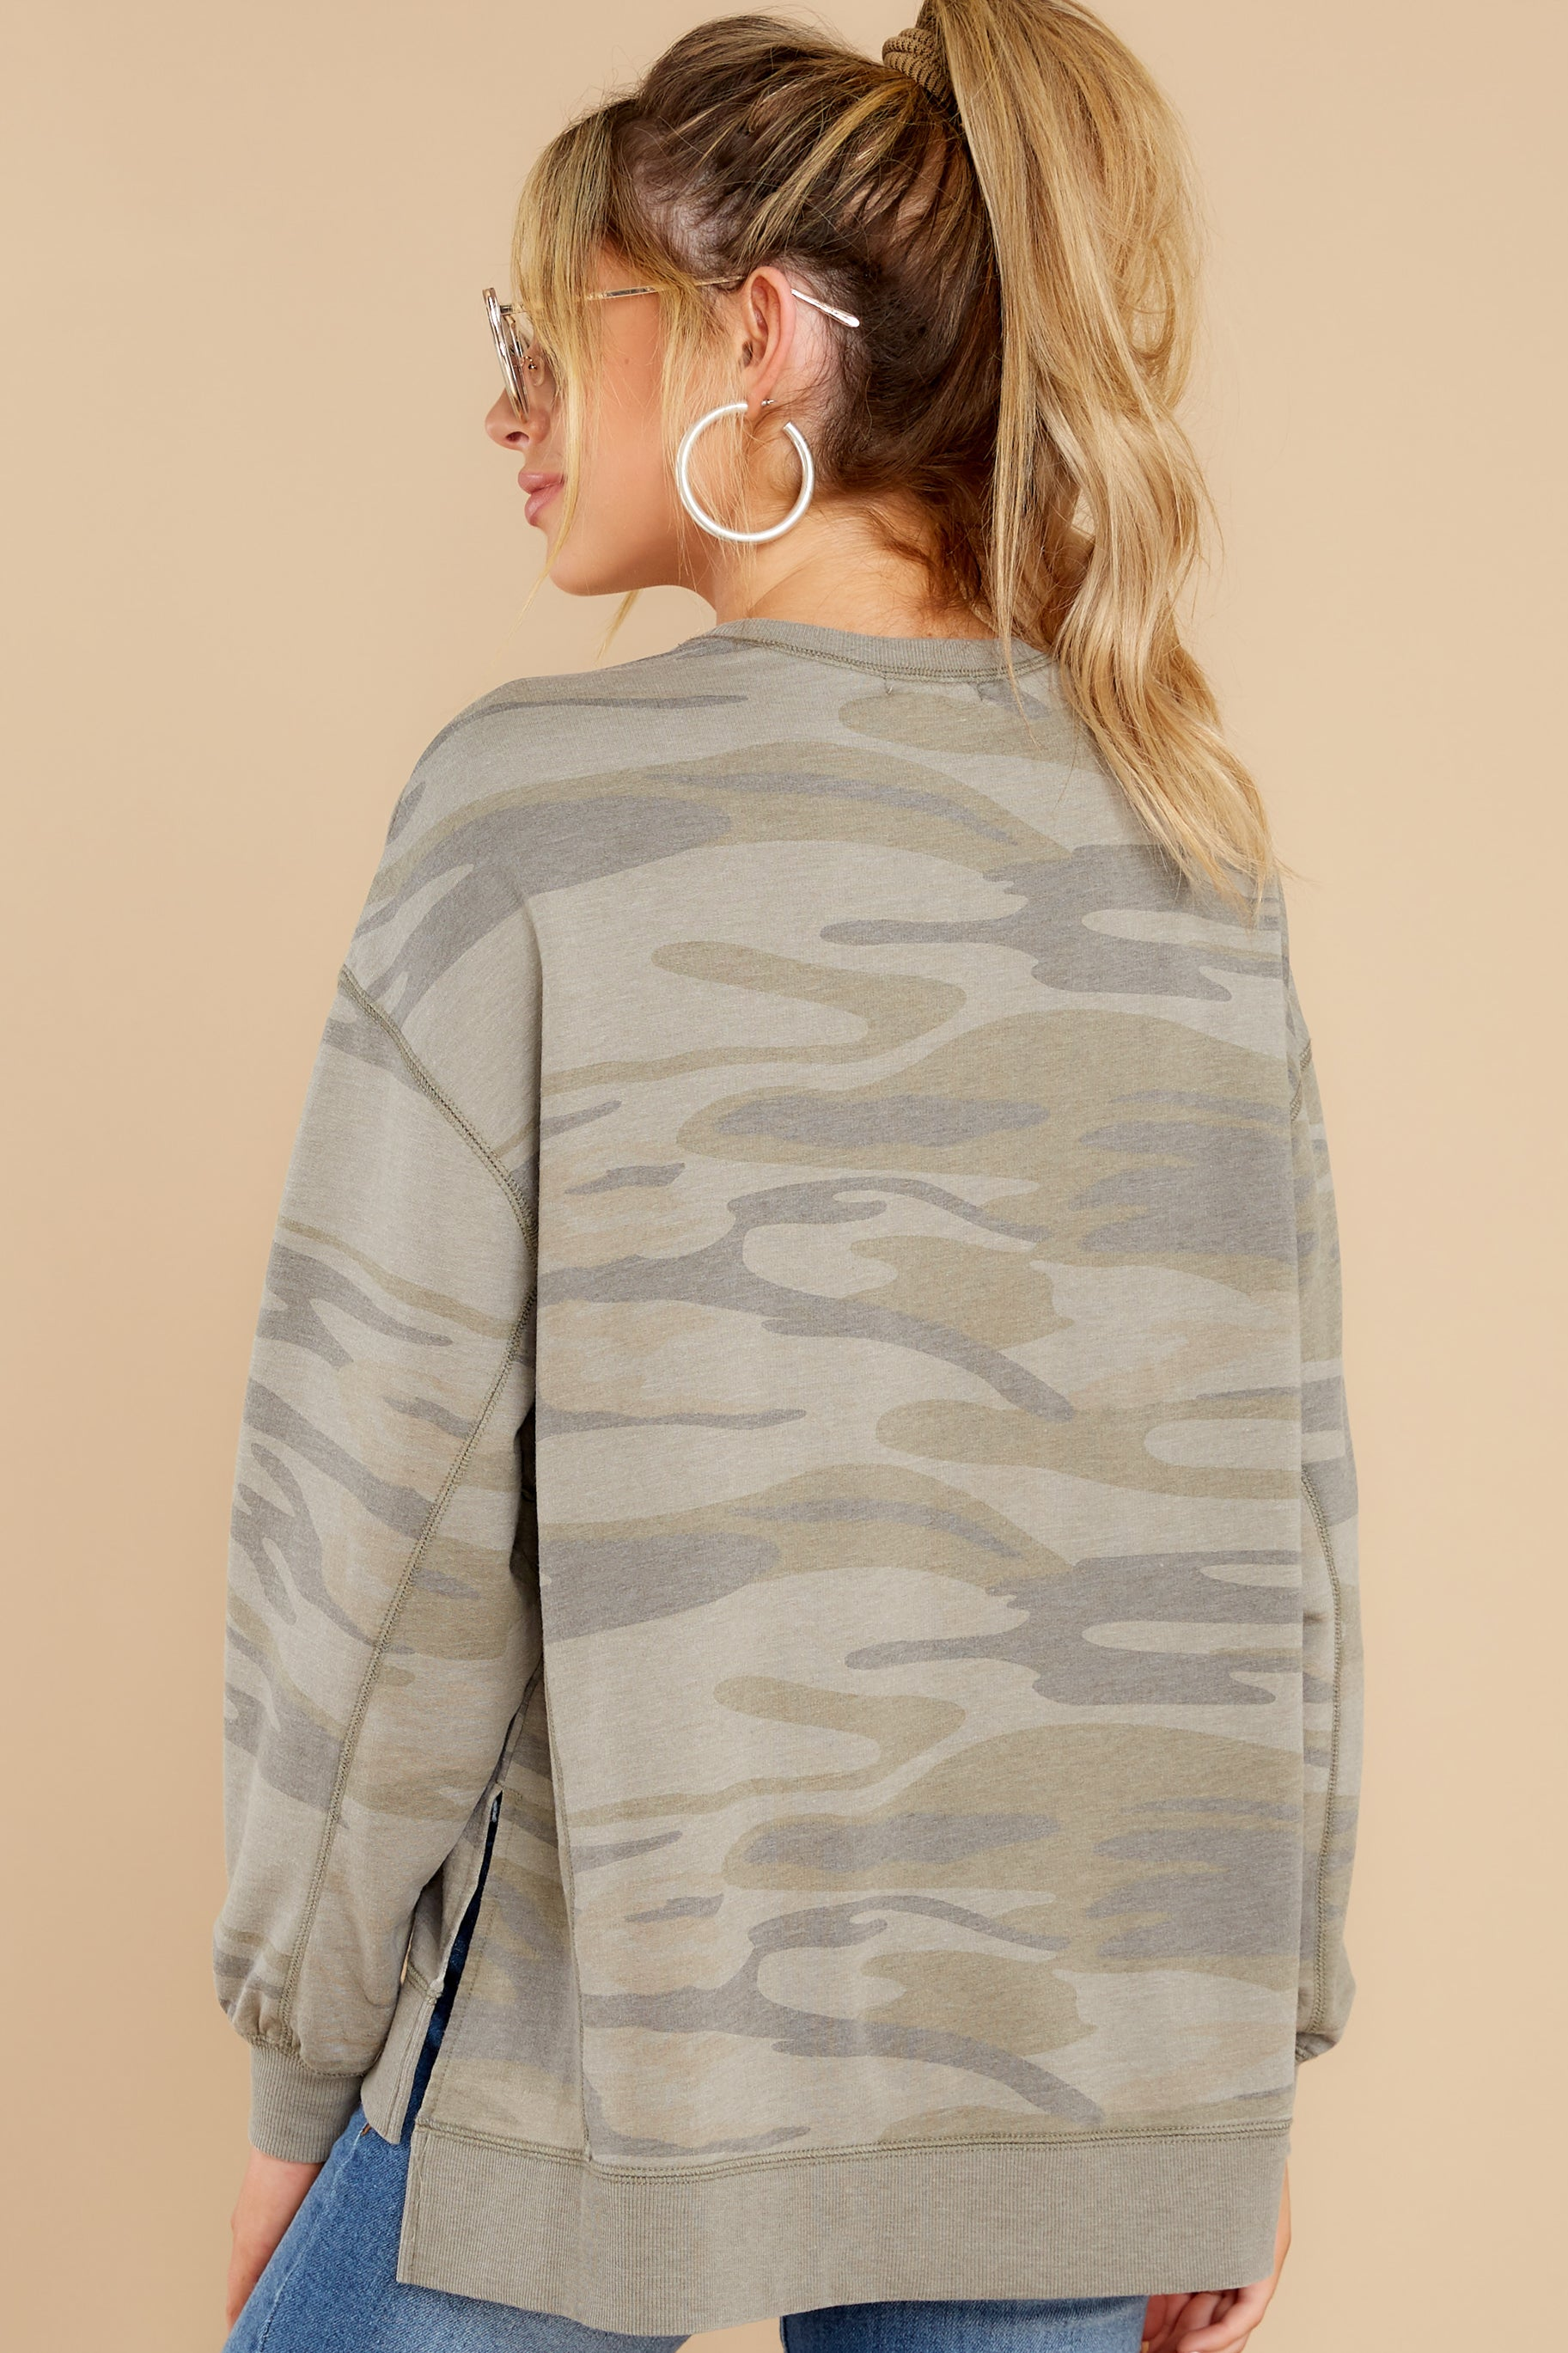 7 Modern Light Sage Camo Weekender at reddress.com